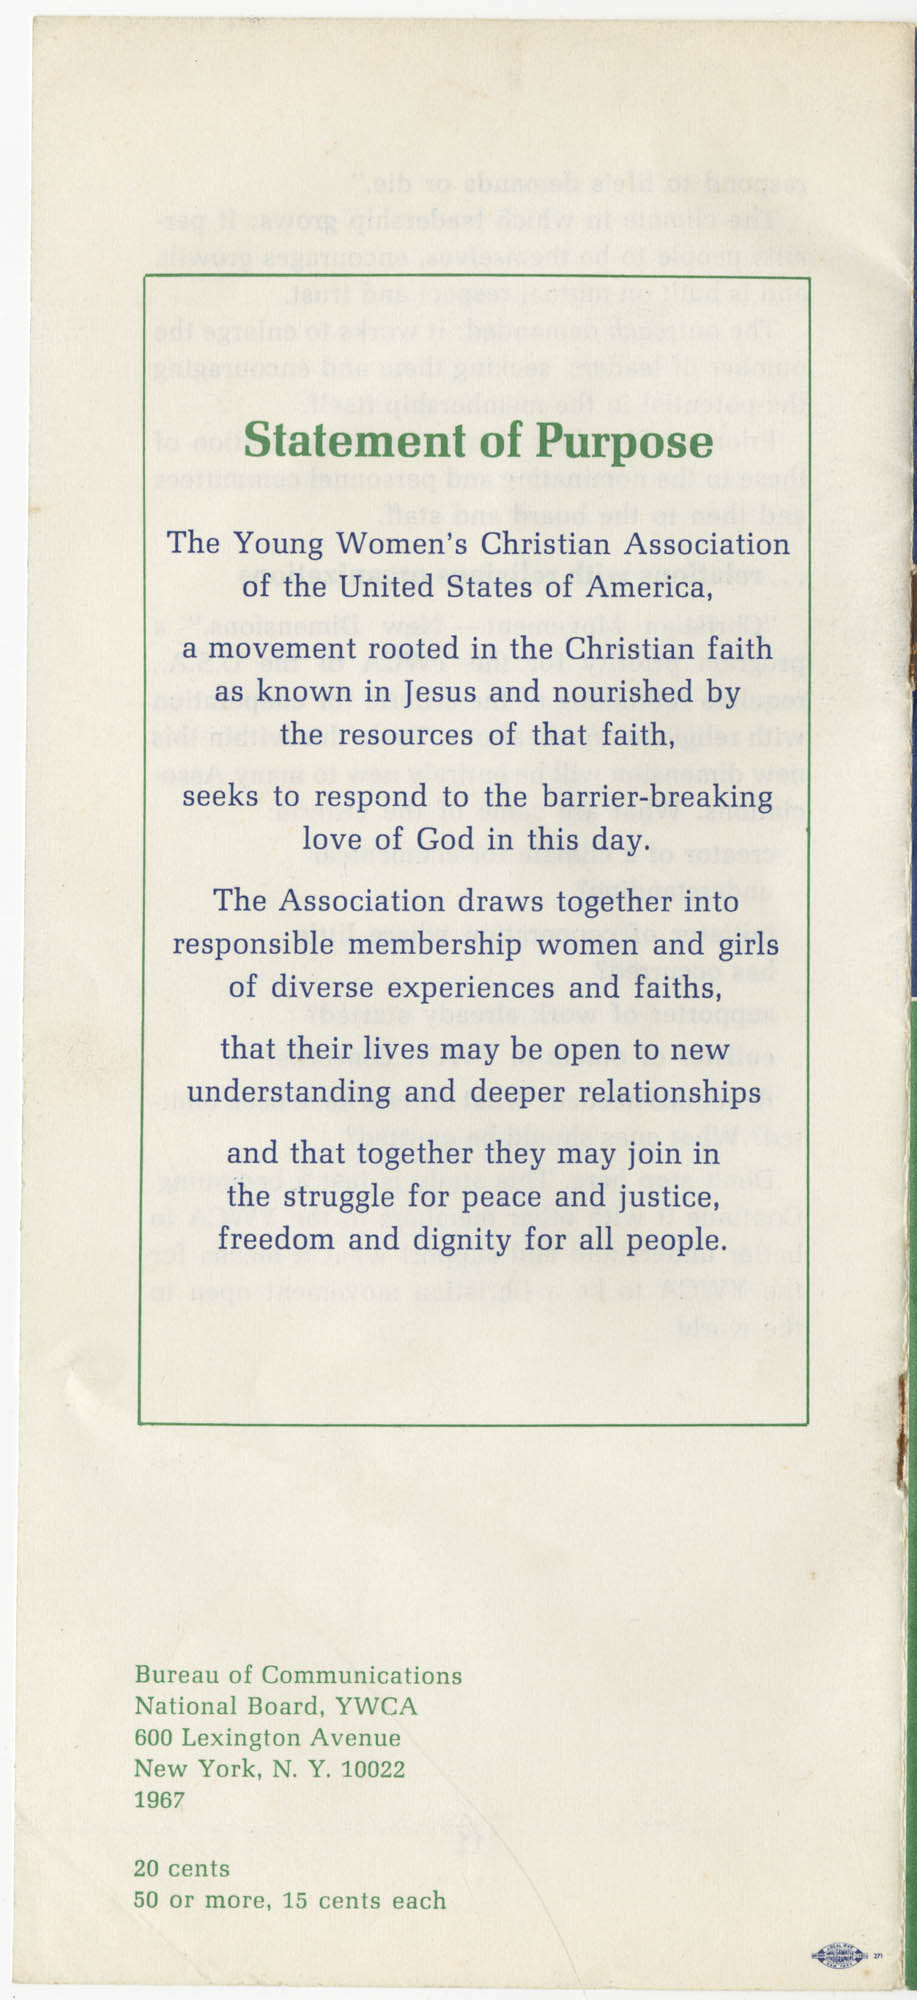 The Y.W.C.A.: A Christian Movement Open to the World, Back Cover